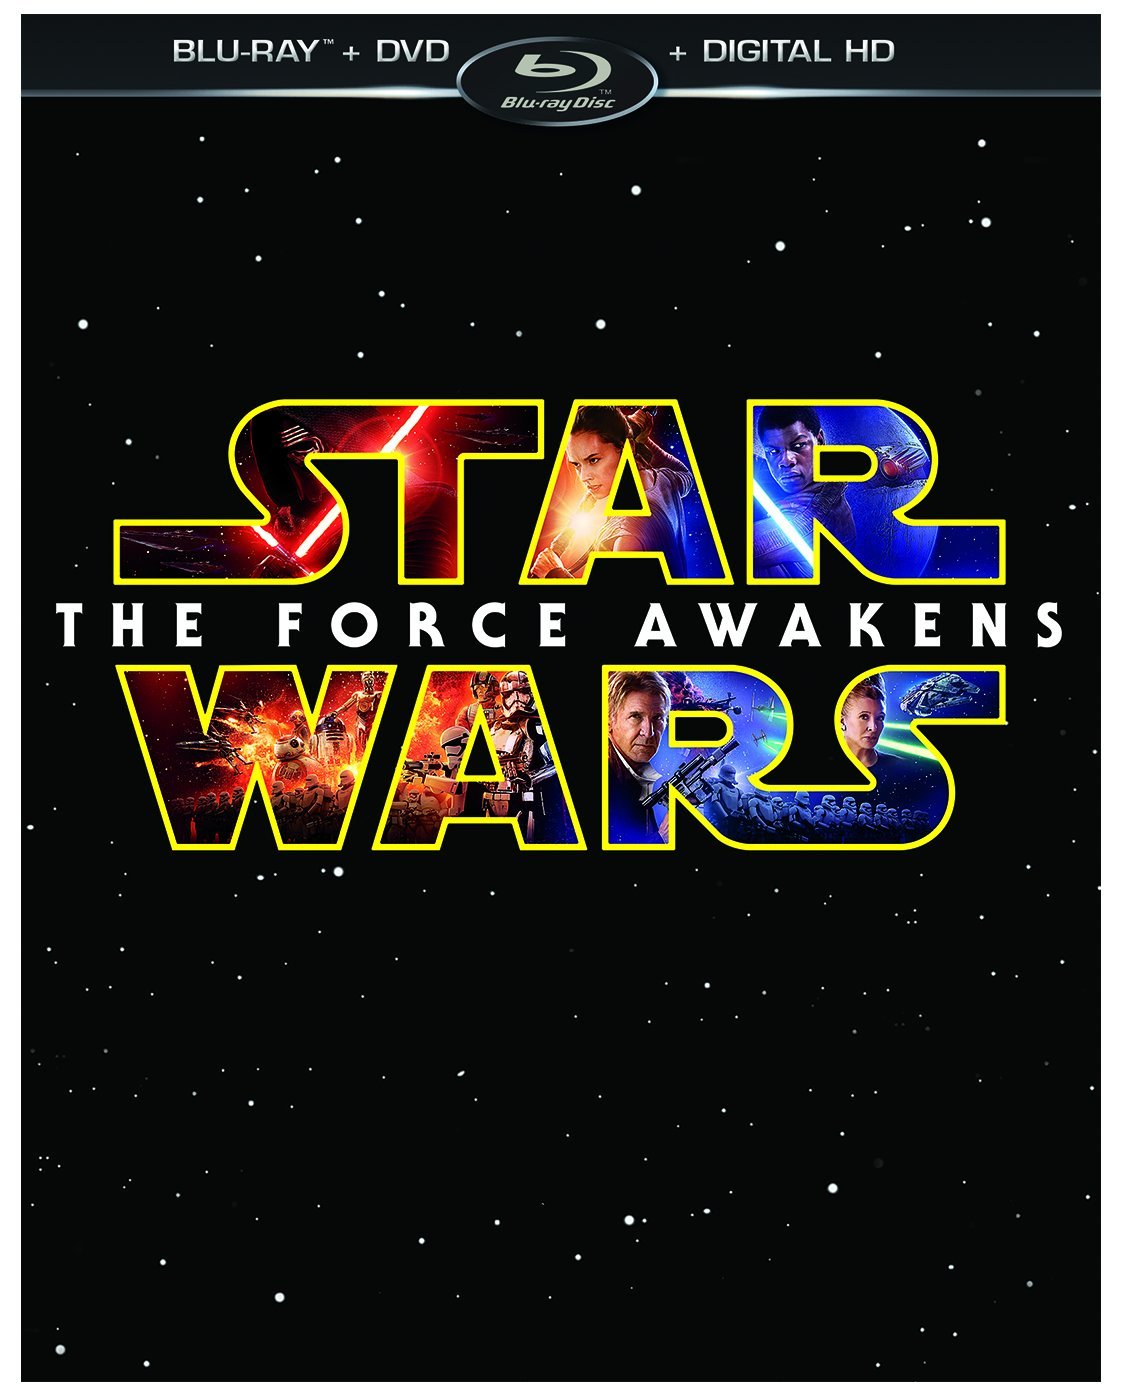 best star wars gift idea 2016 Star Wars- The Force Awakens (Blu-ray:DVD:Digital HD)